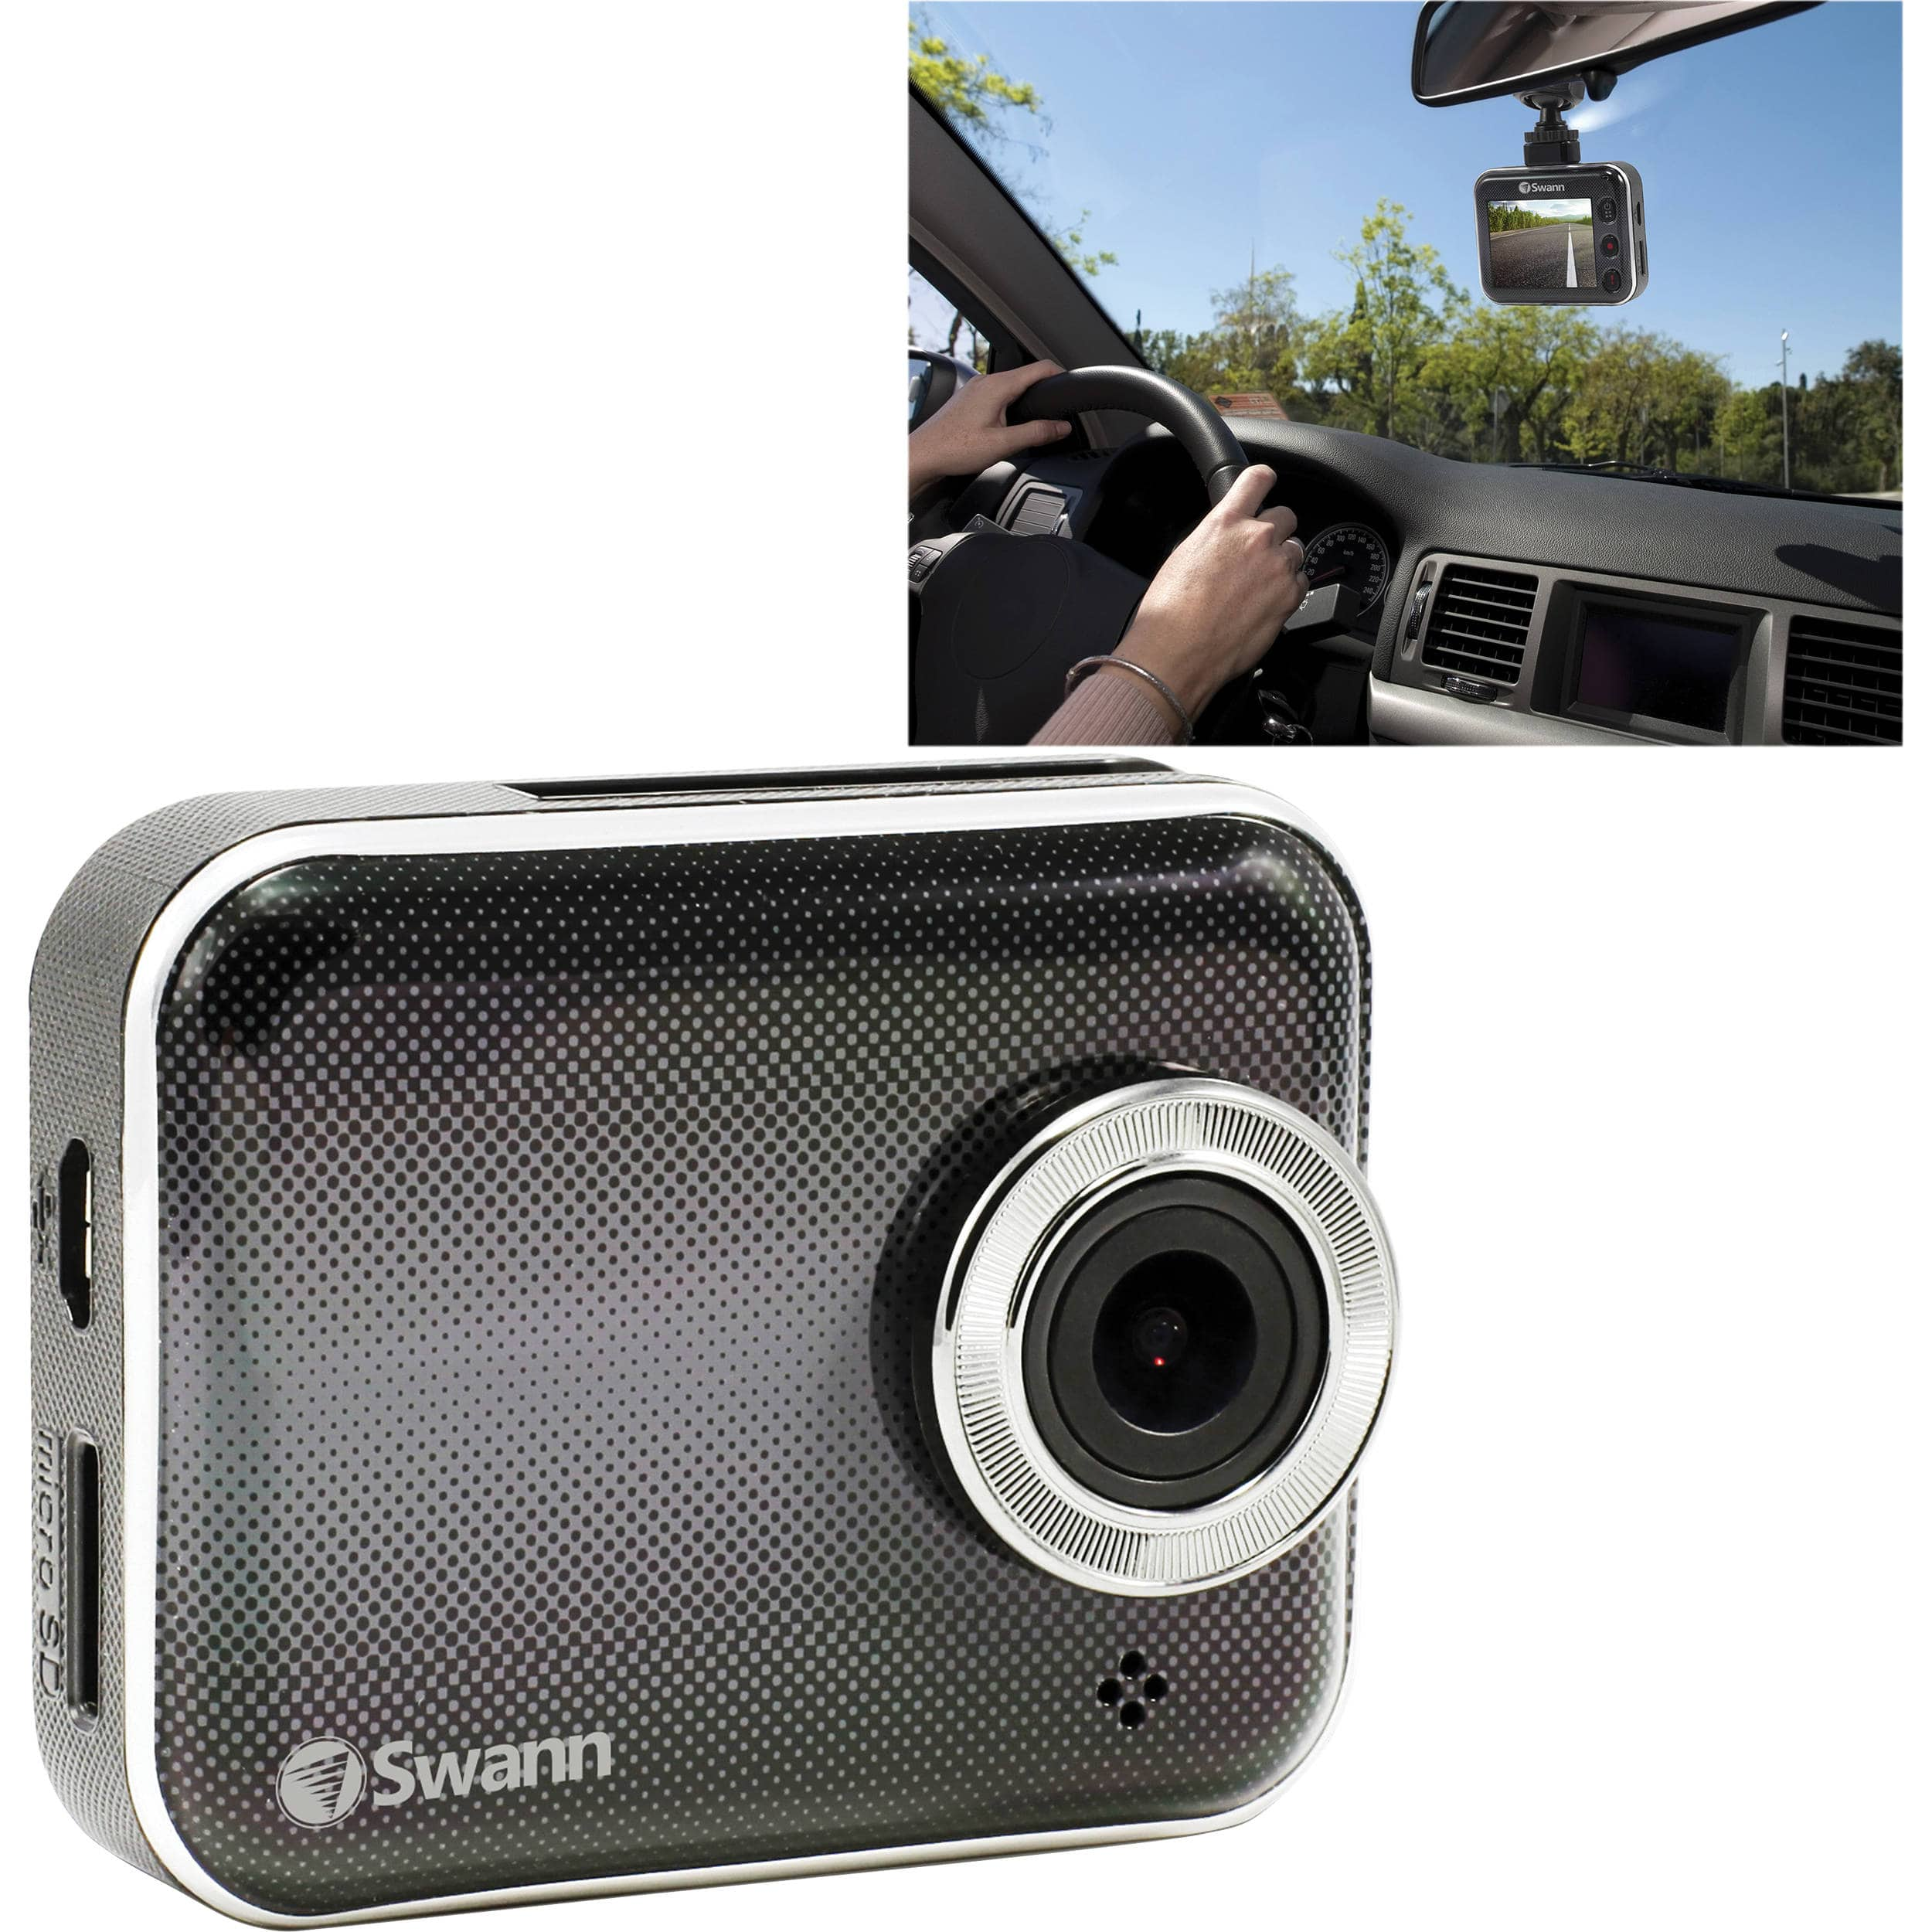 Swann  Smart HD Dash Camera with Wi-Fi & Mobile App $49.99 @ B&H Photo w/ Free Shipping